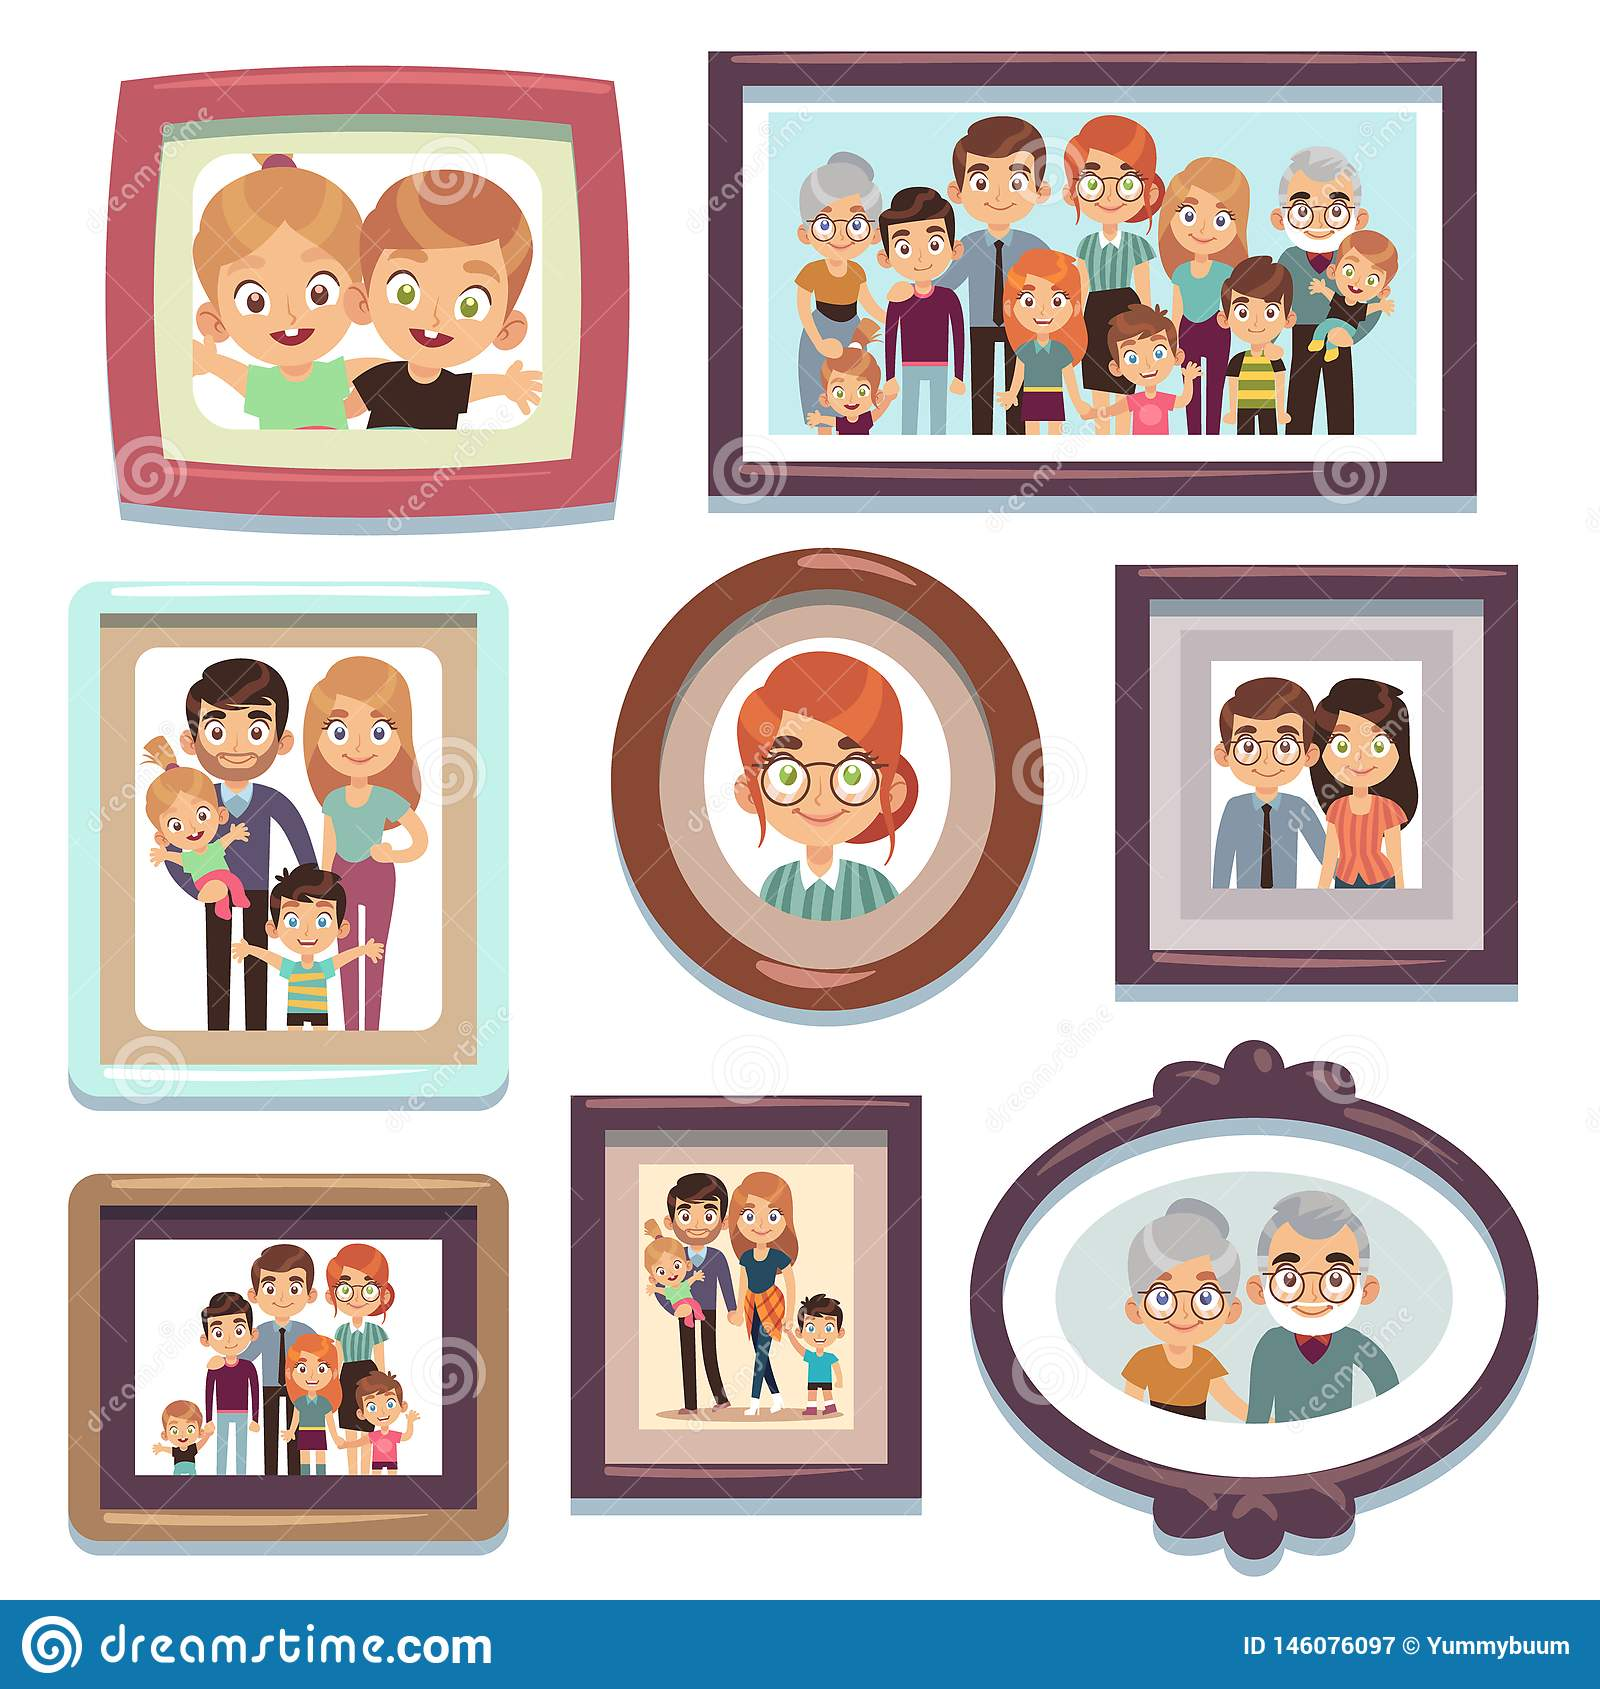 Family portrait photos. Pictures people photo frame happy characters relatives dynasty parents kids relationship, flat